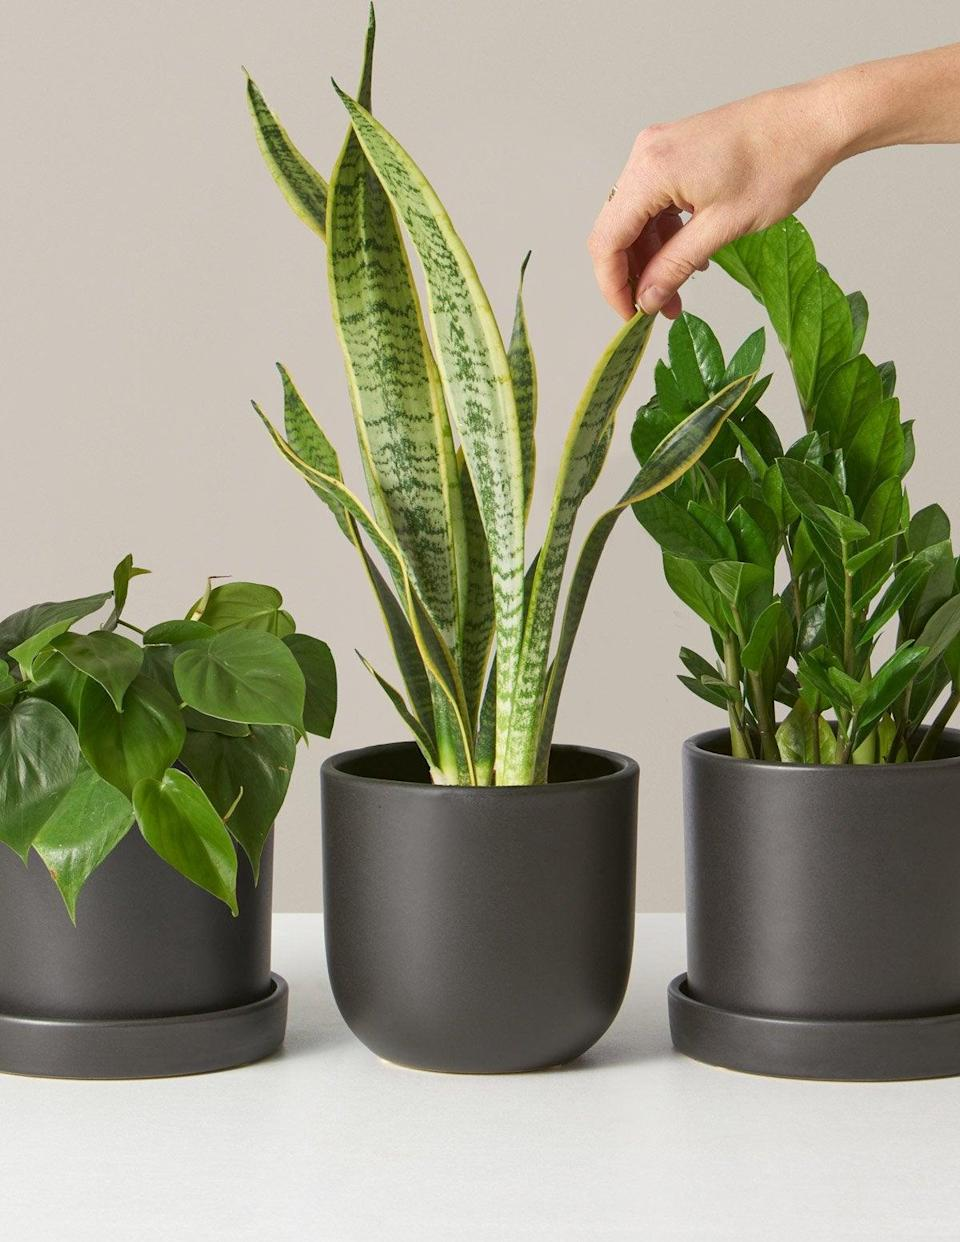 """<strong><h3><h2>The Sill </h2></h3></strong><br><strong>Plant Subscription</strong><br>Since we do not subscribe to dad stereotypes, here is a trendy plant subscription for your green-thumbed father. An R29-reader favorite, The Sill sends one beginner-level plant surprise (in an aesthetically pleasing planter) complete with detailed care instructions to your chosen giftee's doorstep each month. <br><br>Shop <strong><em><a href=""""https://www.thesill.com/collections/plant-subscription"""" rel=""""nofollow noopener"""" target=""""_blank"""" data-ylk=""""slk:The Sill"""" class=""""link rapid-noclick-resp"""">The Sill</a></em></strong><br><br><strong>The Sill</strong> Classic Plant Subscription, $, available at <a href=""""https://go.skimresources.com/?id=30283X879131&url=https%3A%2F%2Fwww.thesill.com%2Fproducts%2Fclassic-subscription-box"""" rel=""""nofollow noopener"""" target=""""_blank"""" data-ylk=""""slk:The Sill"""" class=""""link rapid-noclick-resp"""">The Sill</a>"""